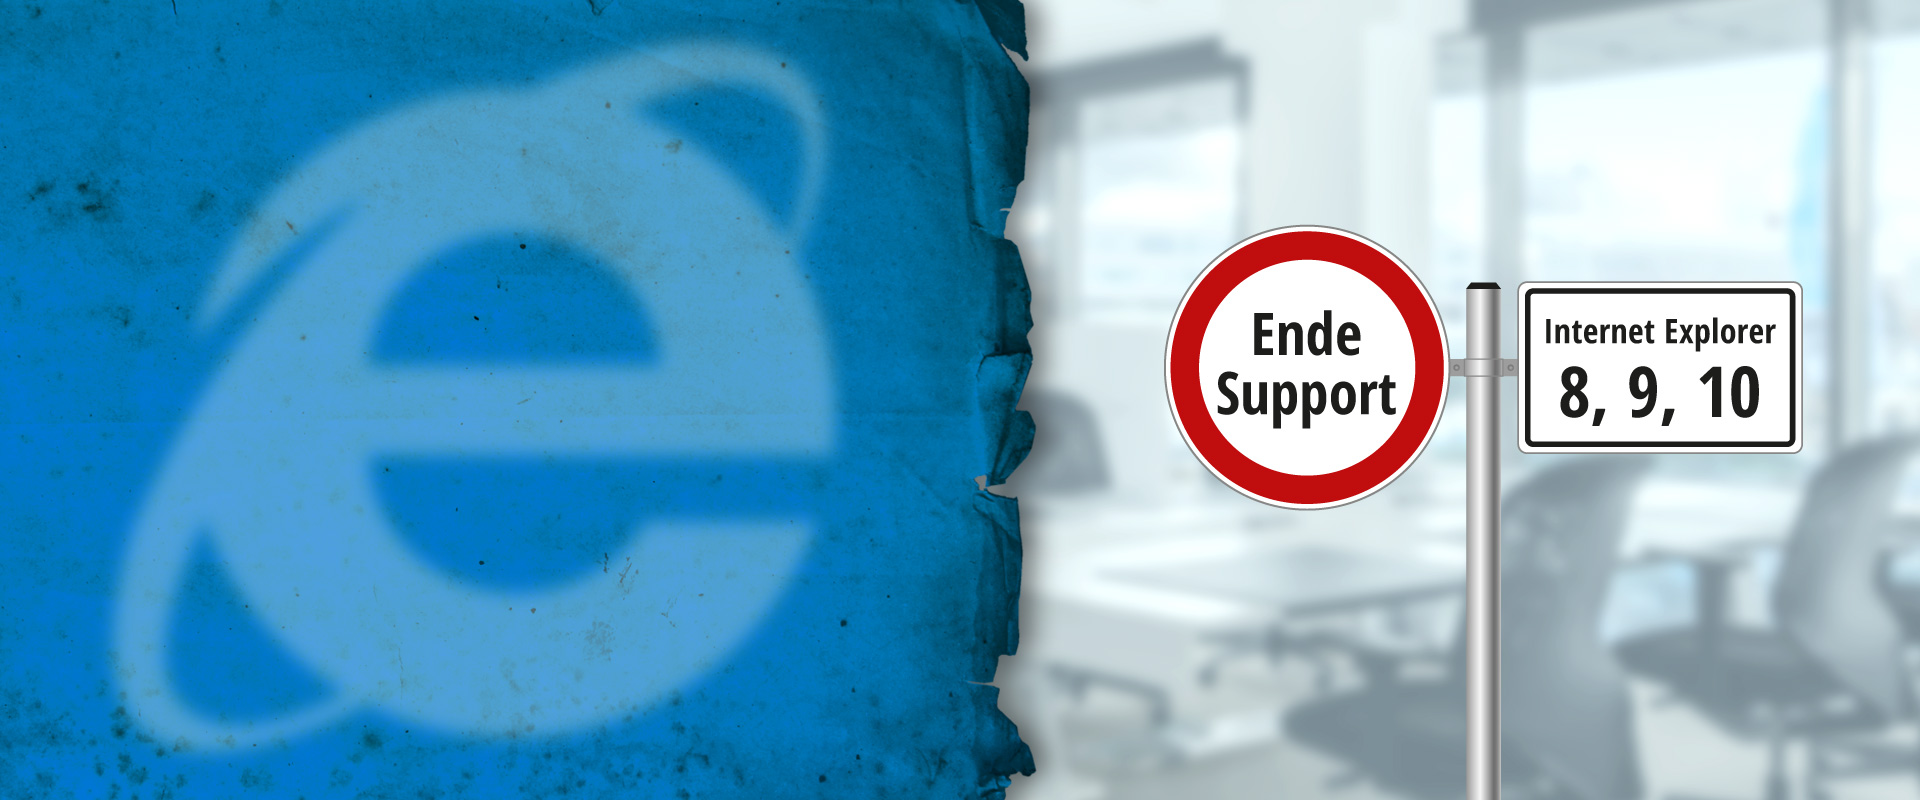 Ende Support Microsoft Internet Explorer 8, 9, 10